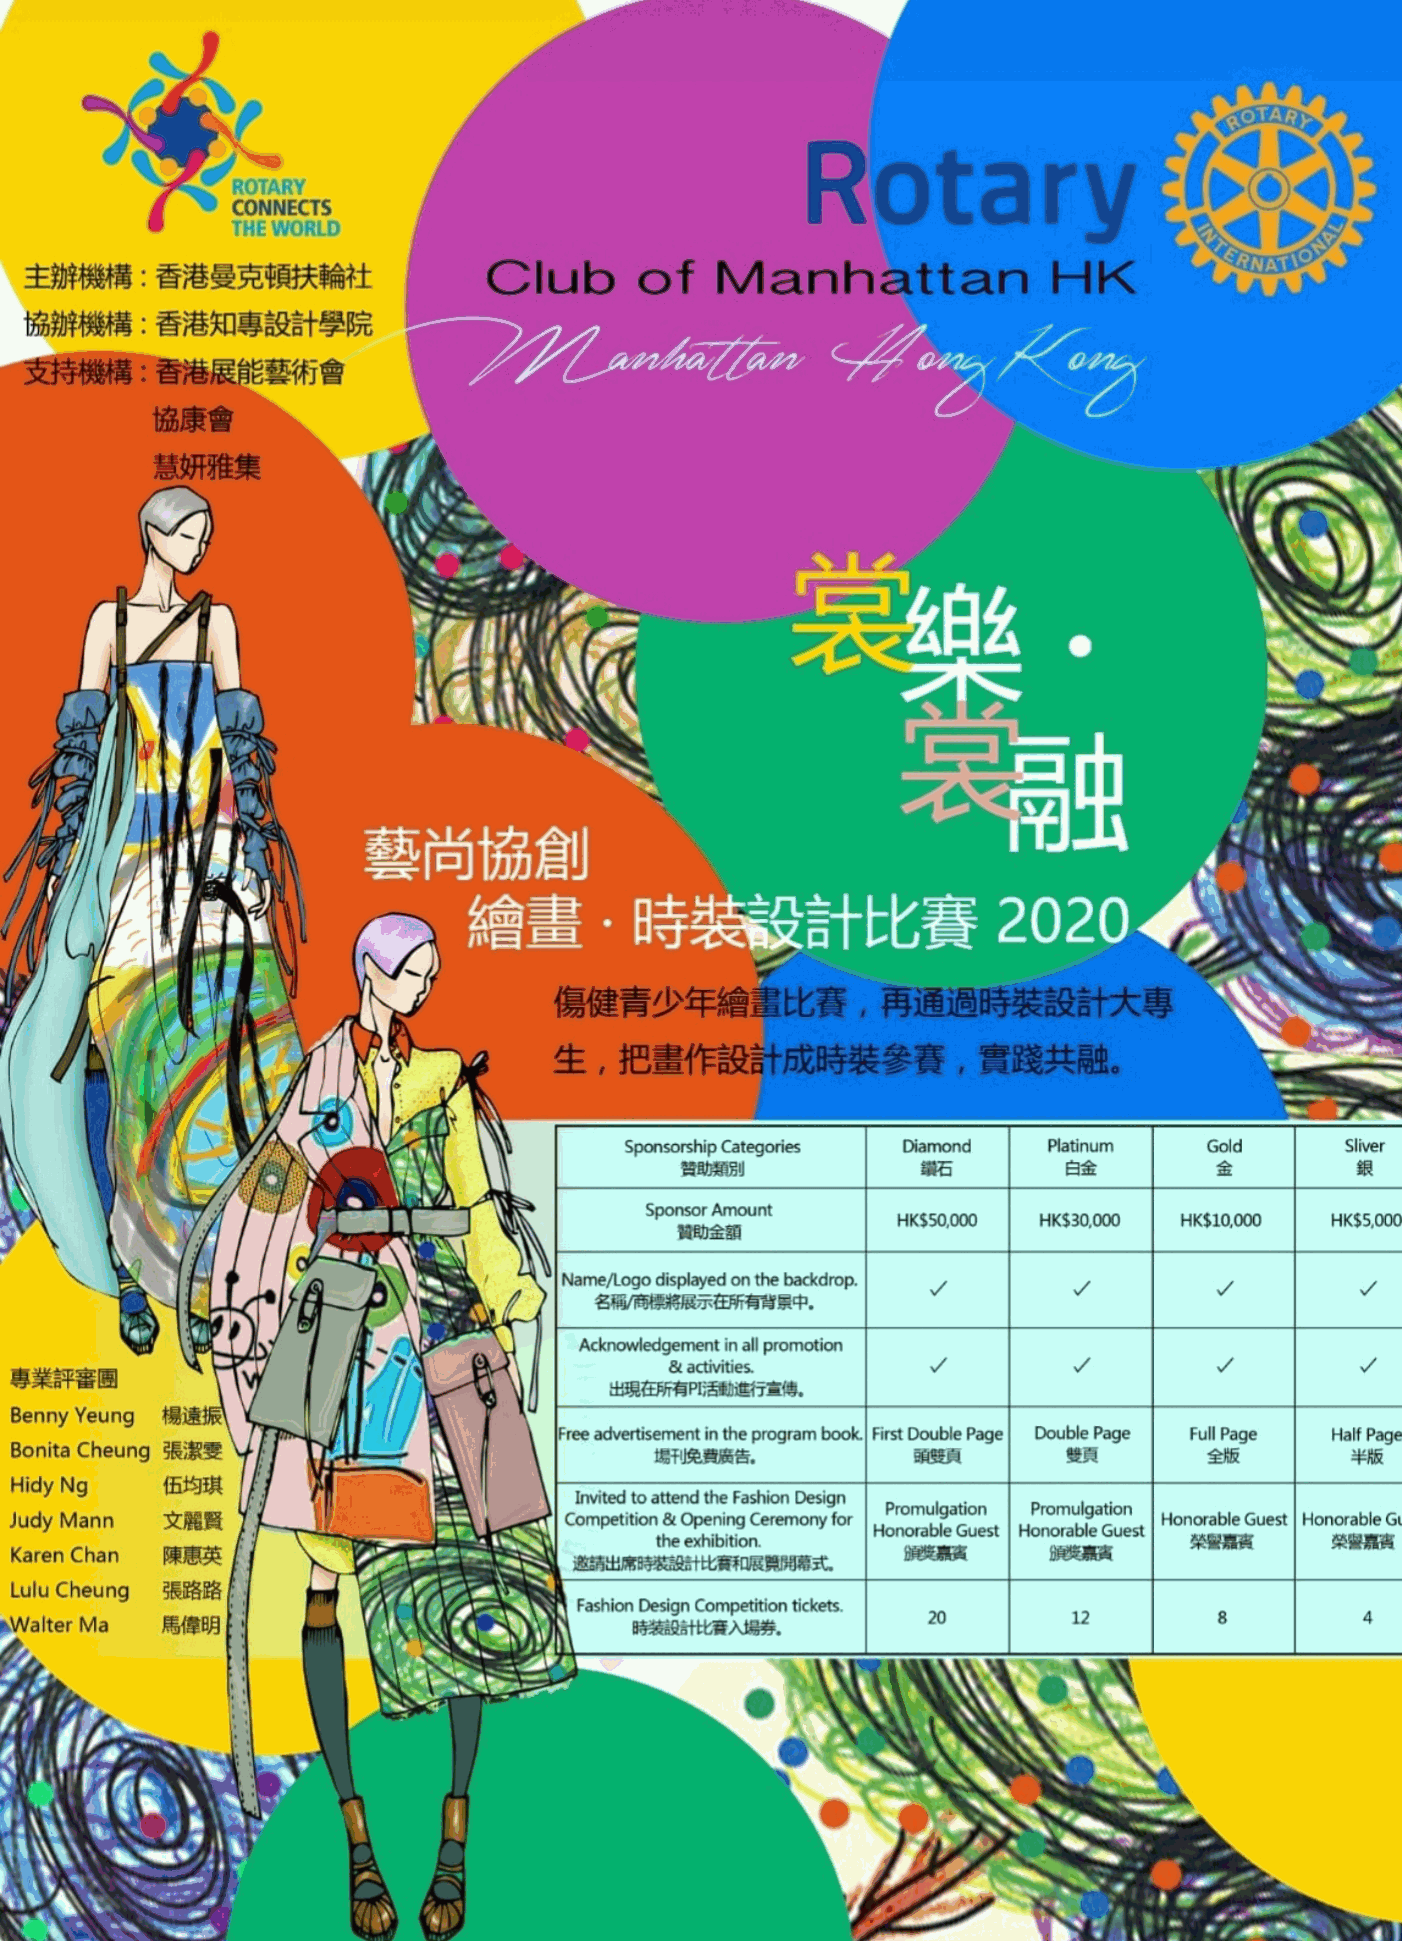 Rotary Fashion Design & Drawing for Talents